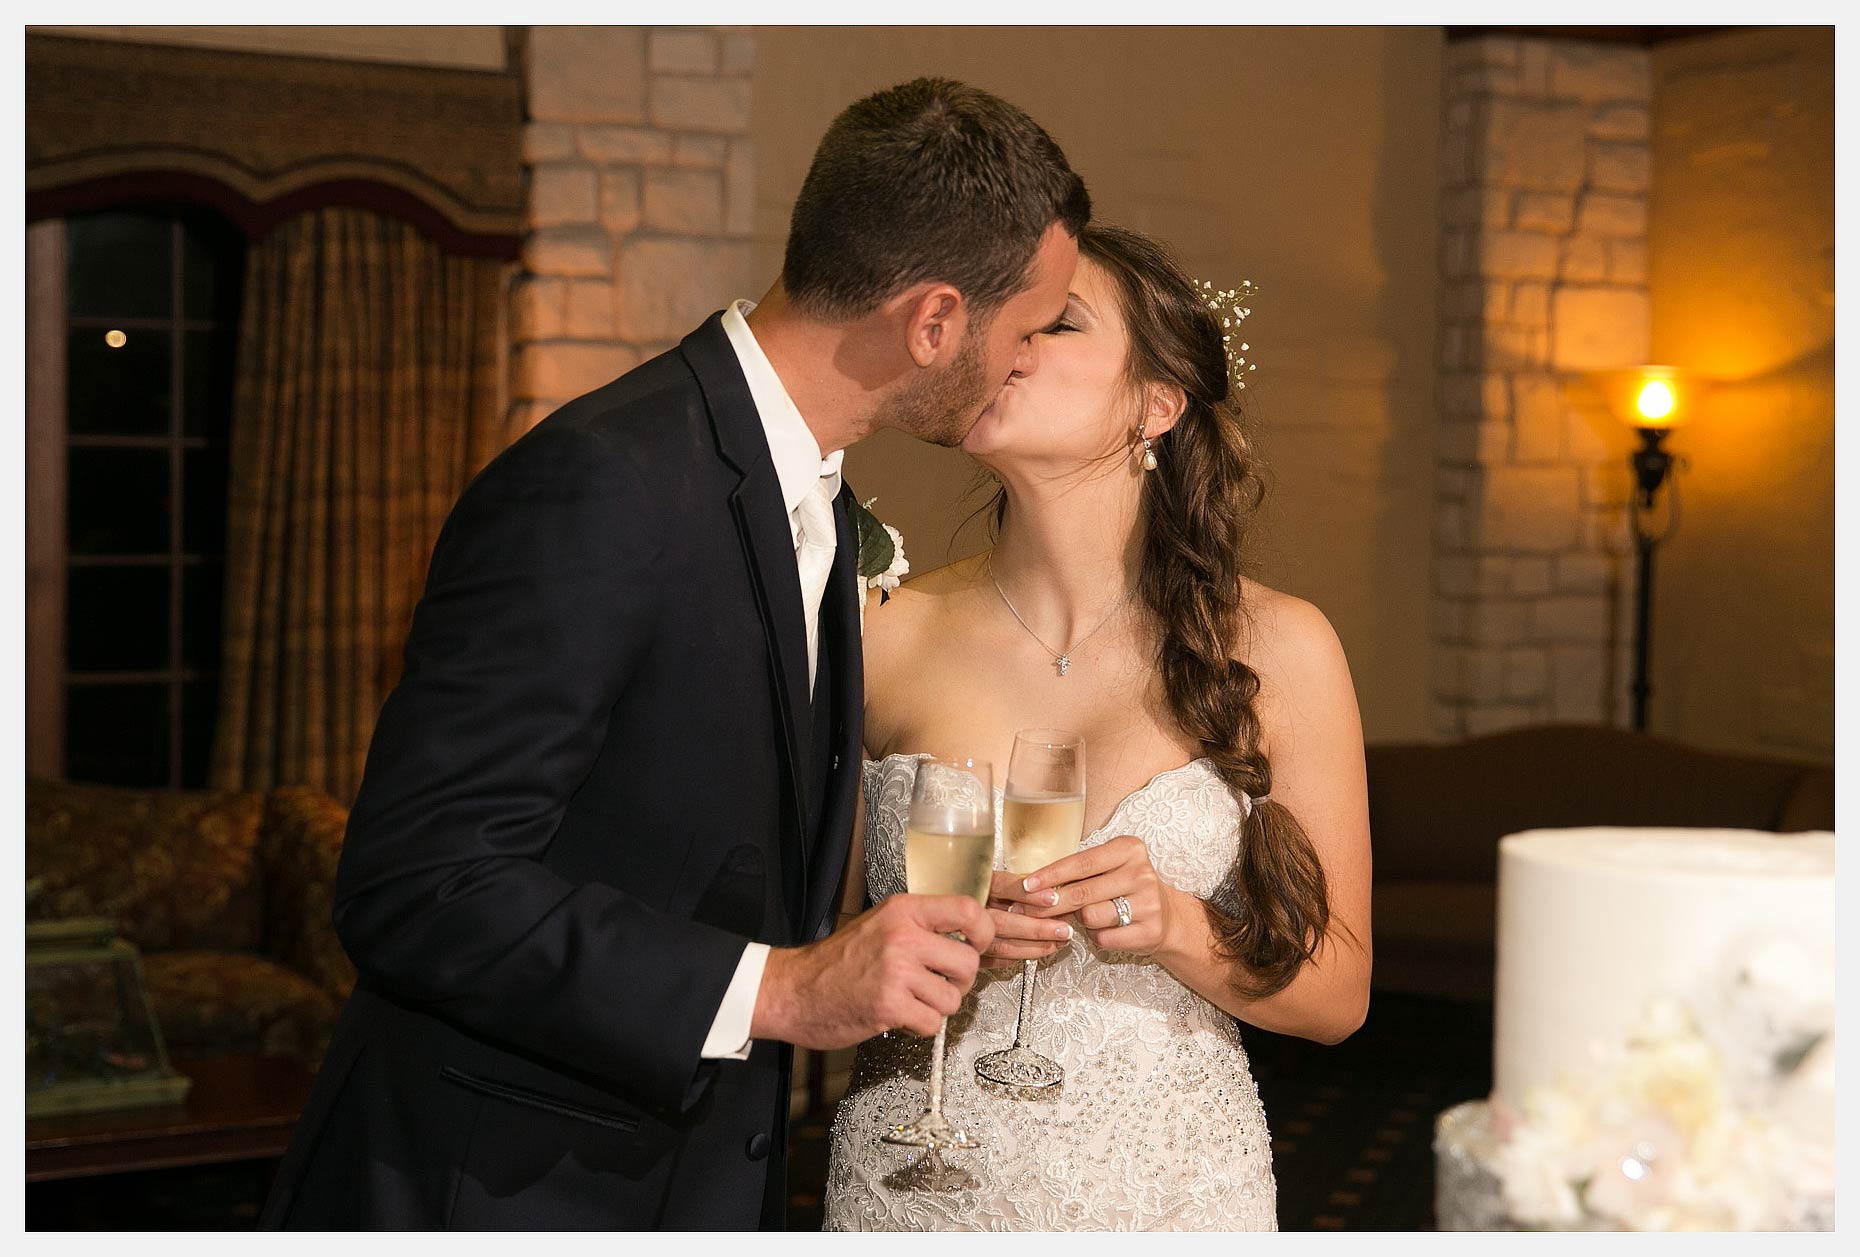 Madison-Carver-Wedding-by-Stephen-Masker-Photography-0114